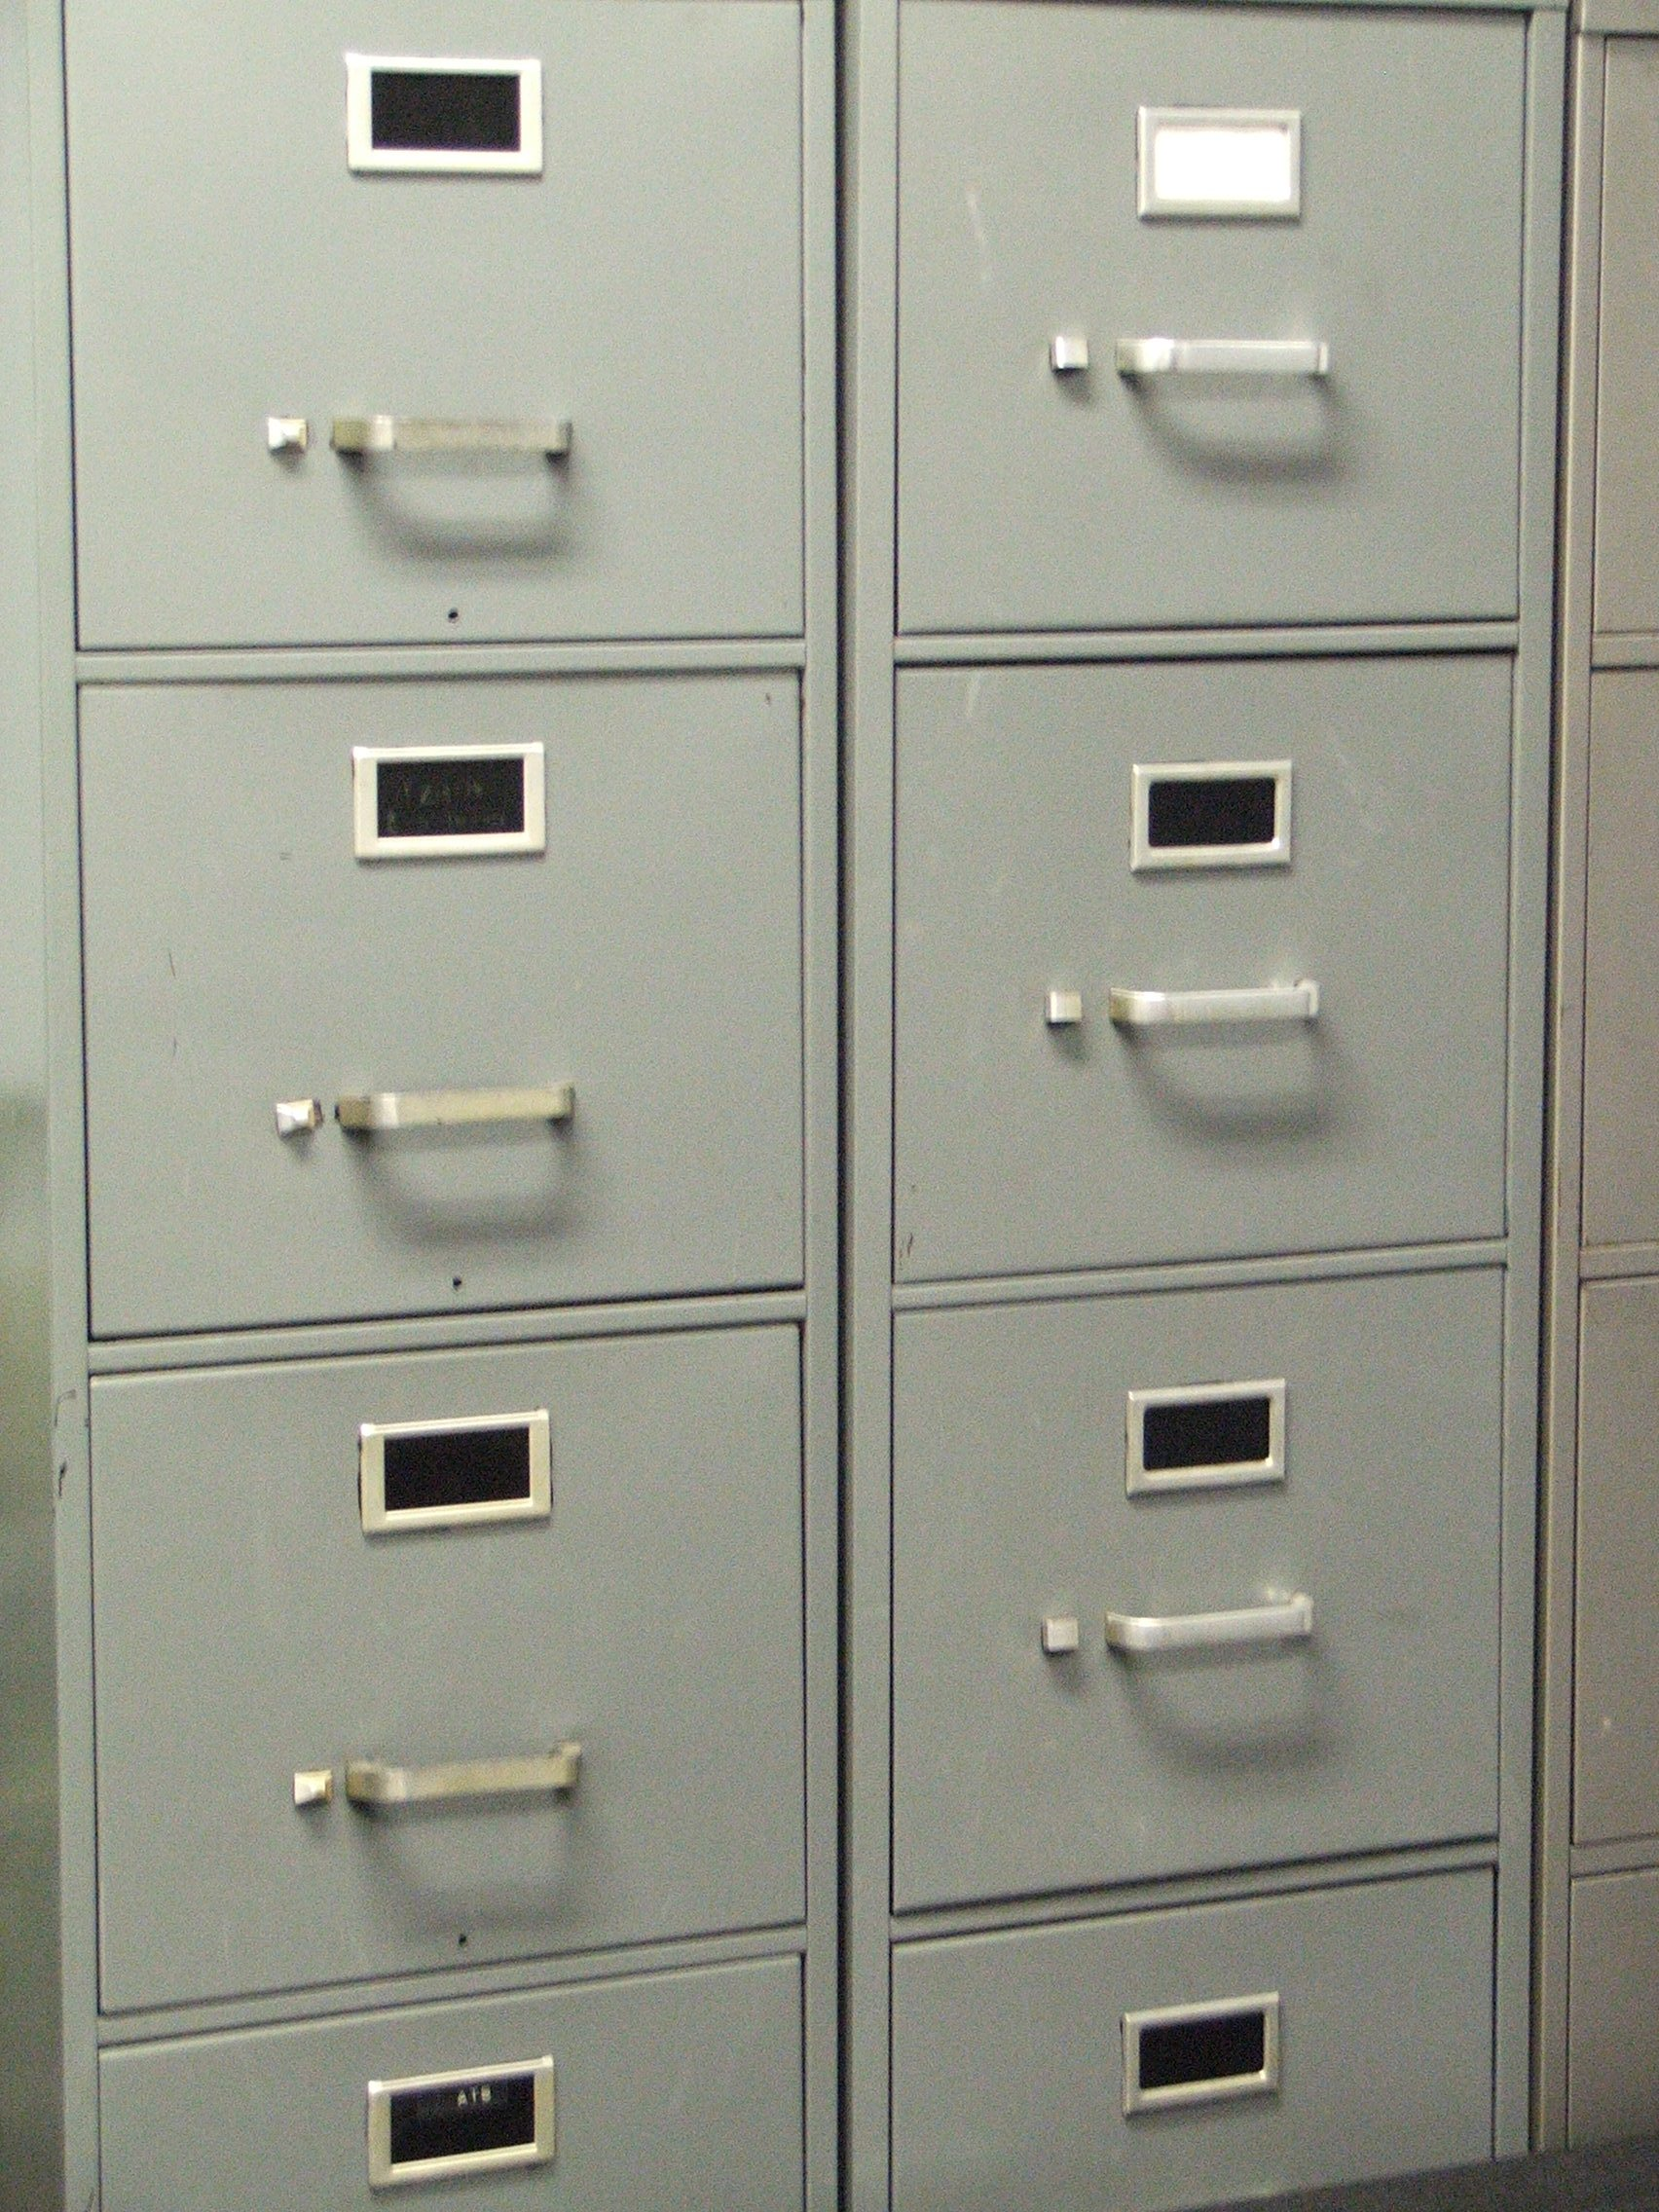 Get Personal with Your Filing System